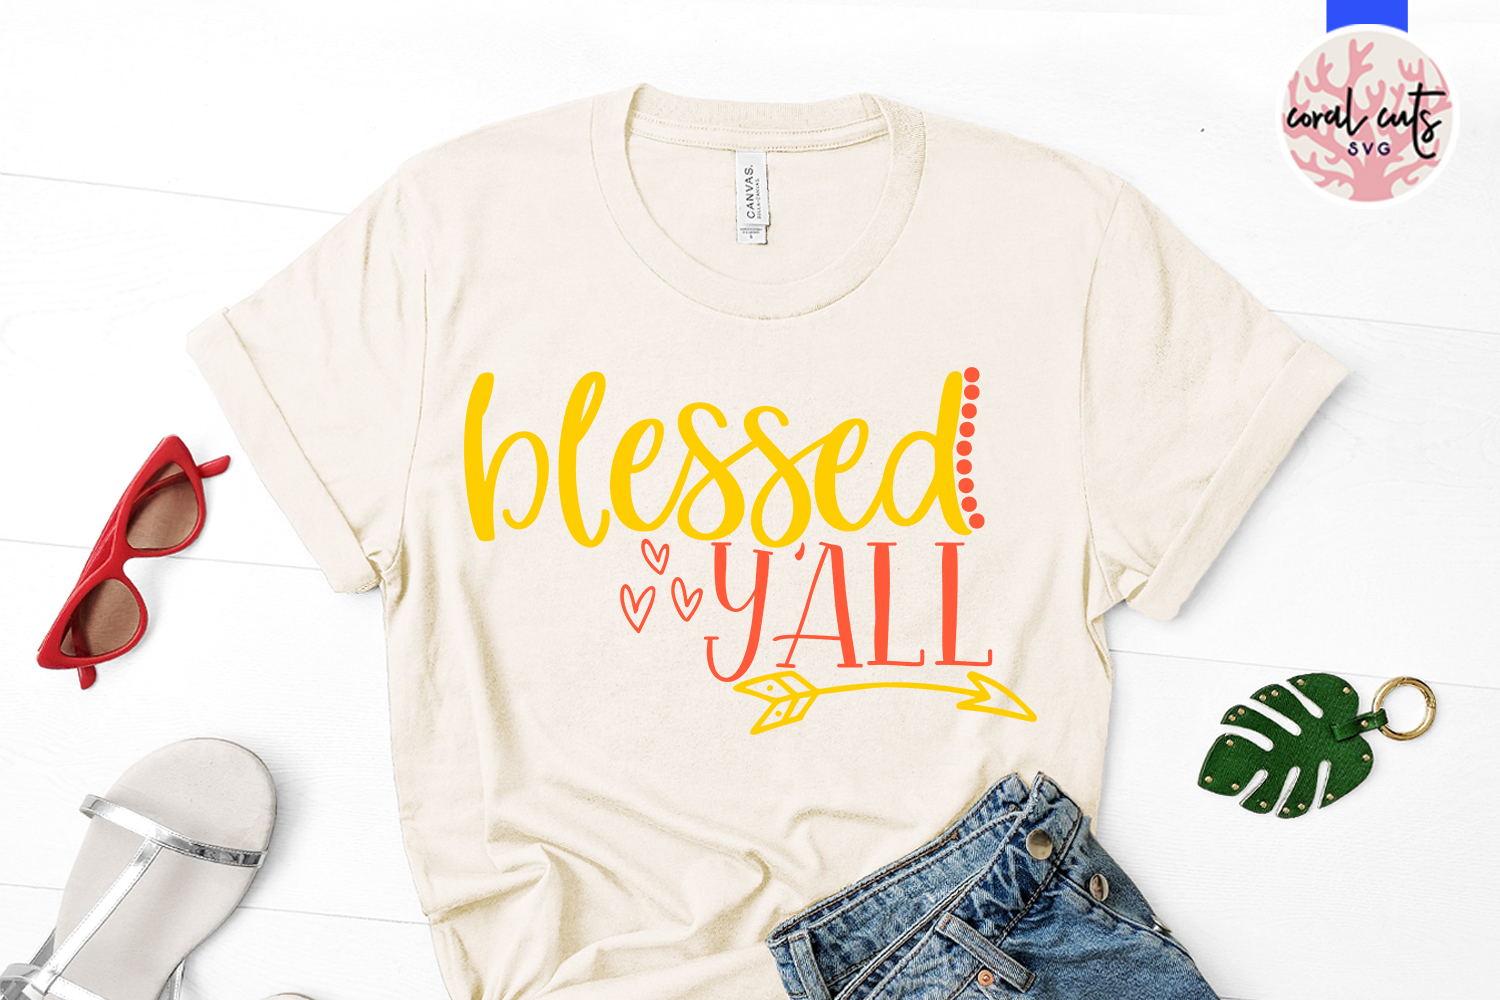 Blessed y'all - Easter SVG EPS DXF PNG Cutting File example image 2